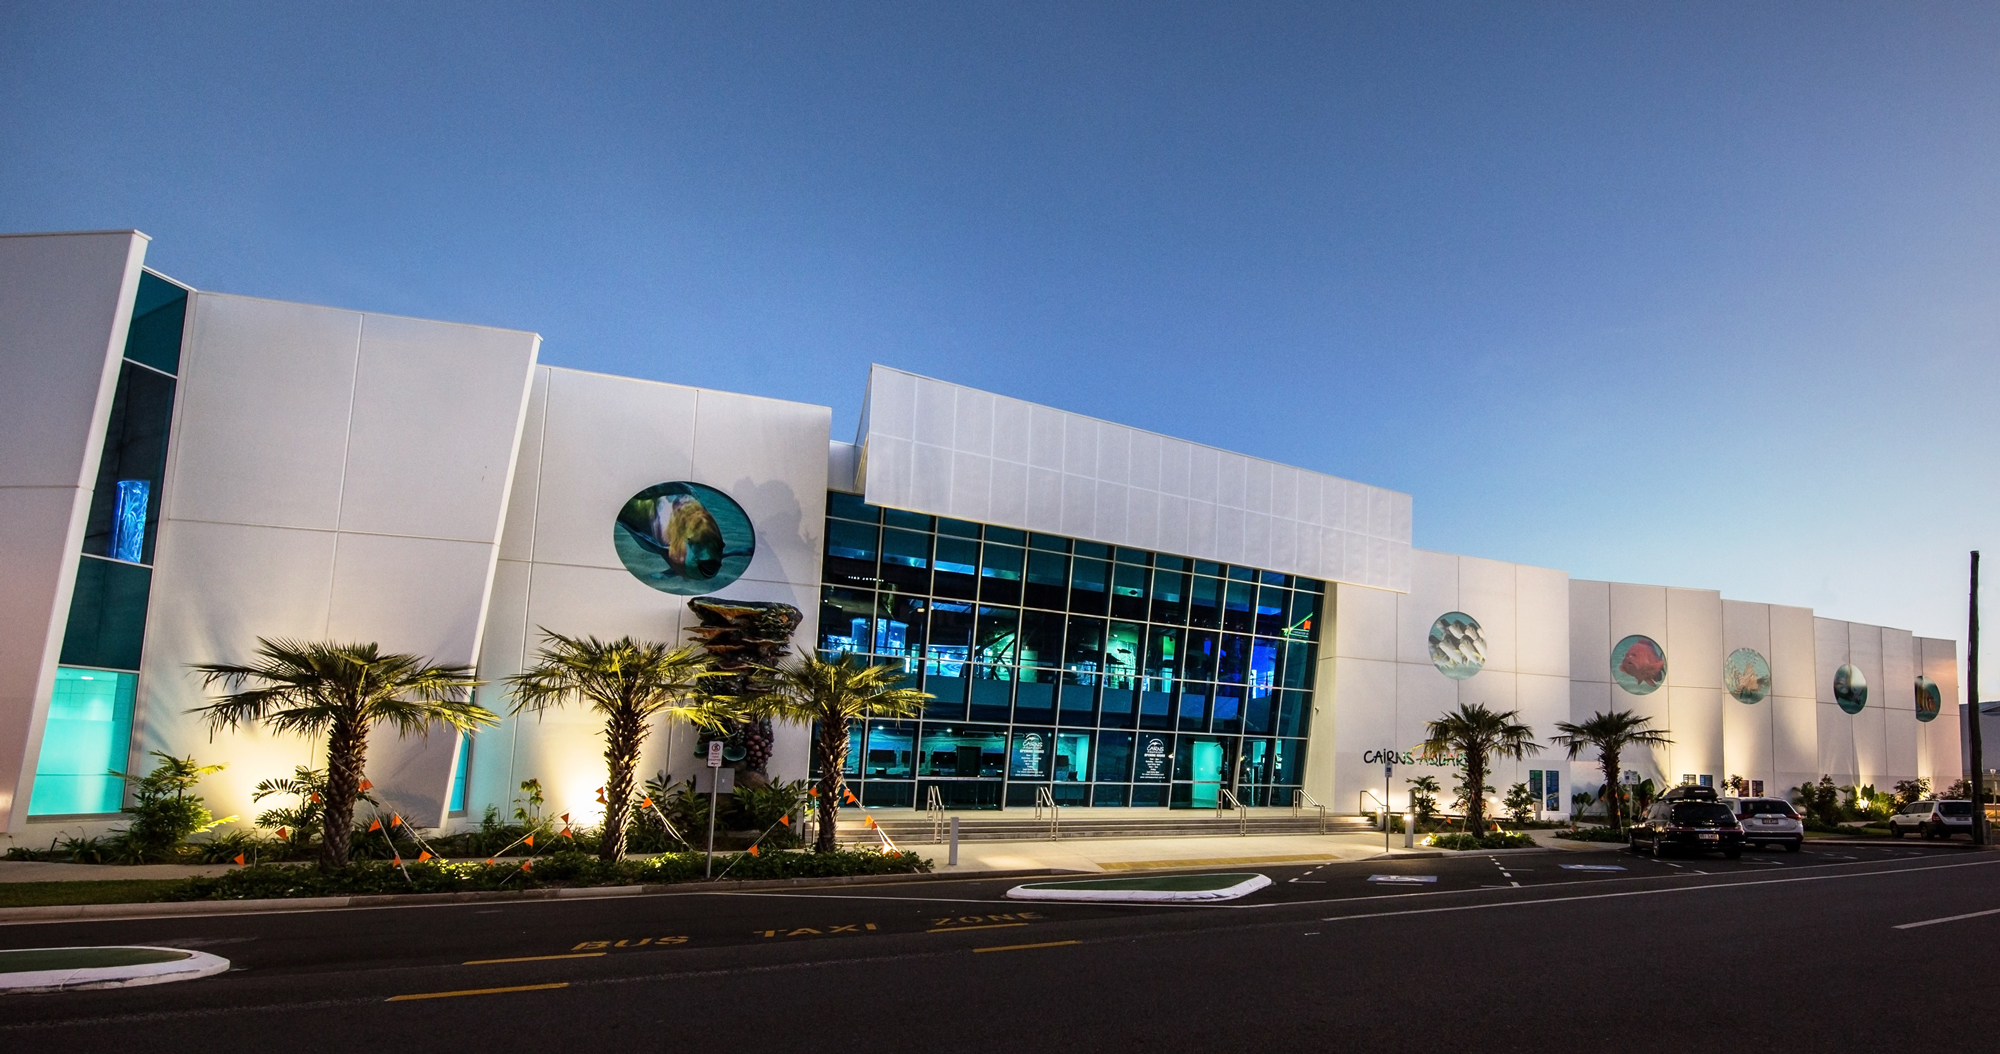 WORLD-CLASS CAIRNS AQUARIUM CLAIMS TOP PRIZE IN 2018 MASTER BUILDERS QLD AWARDS